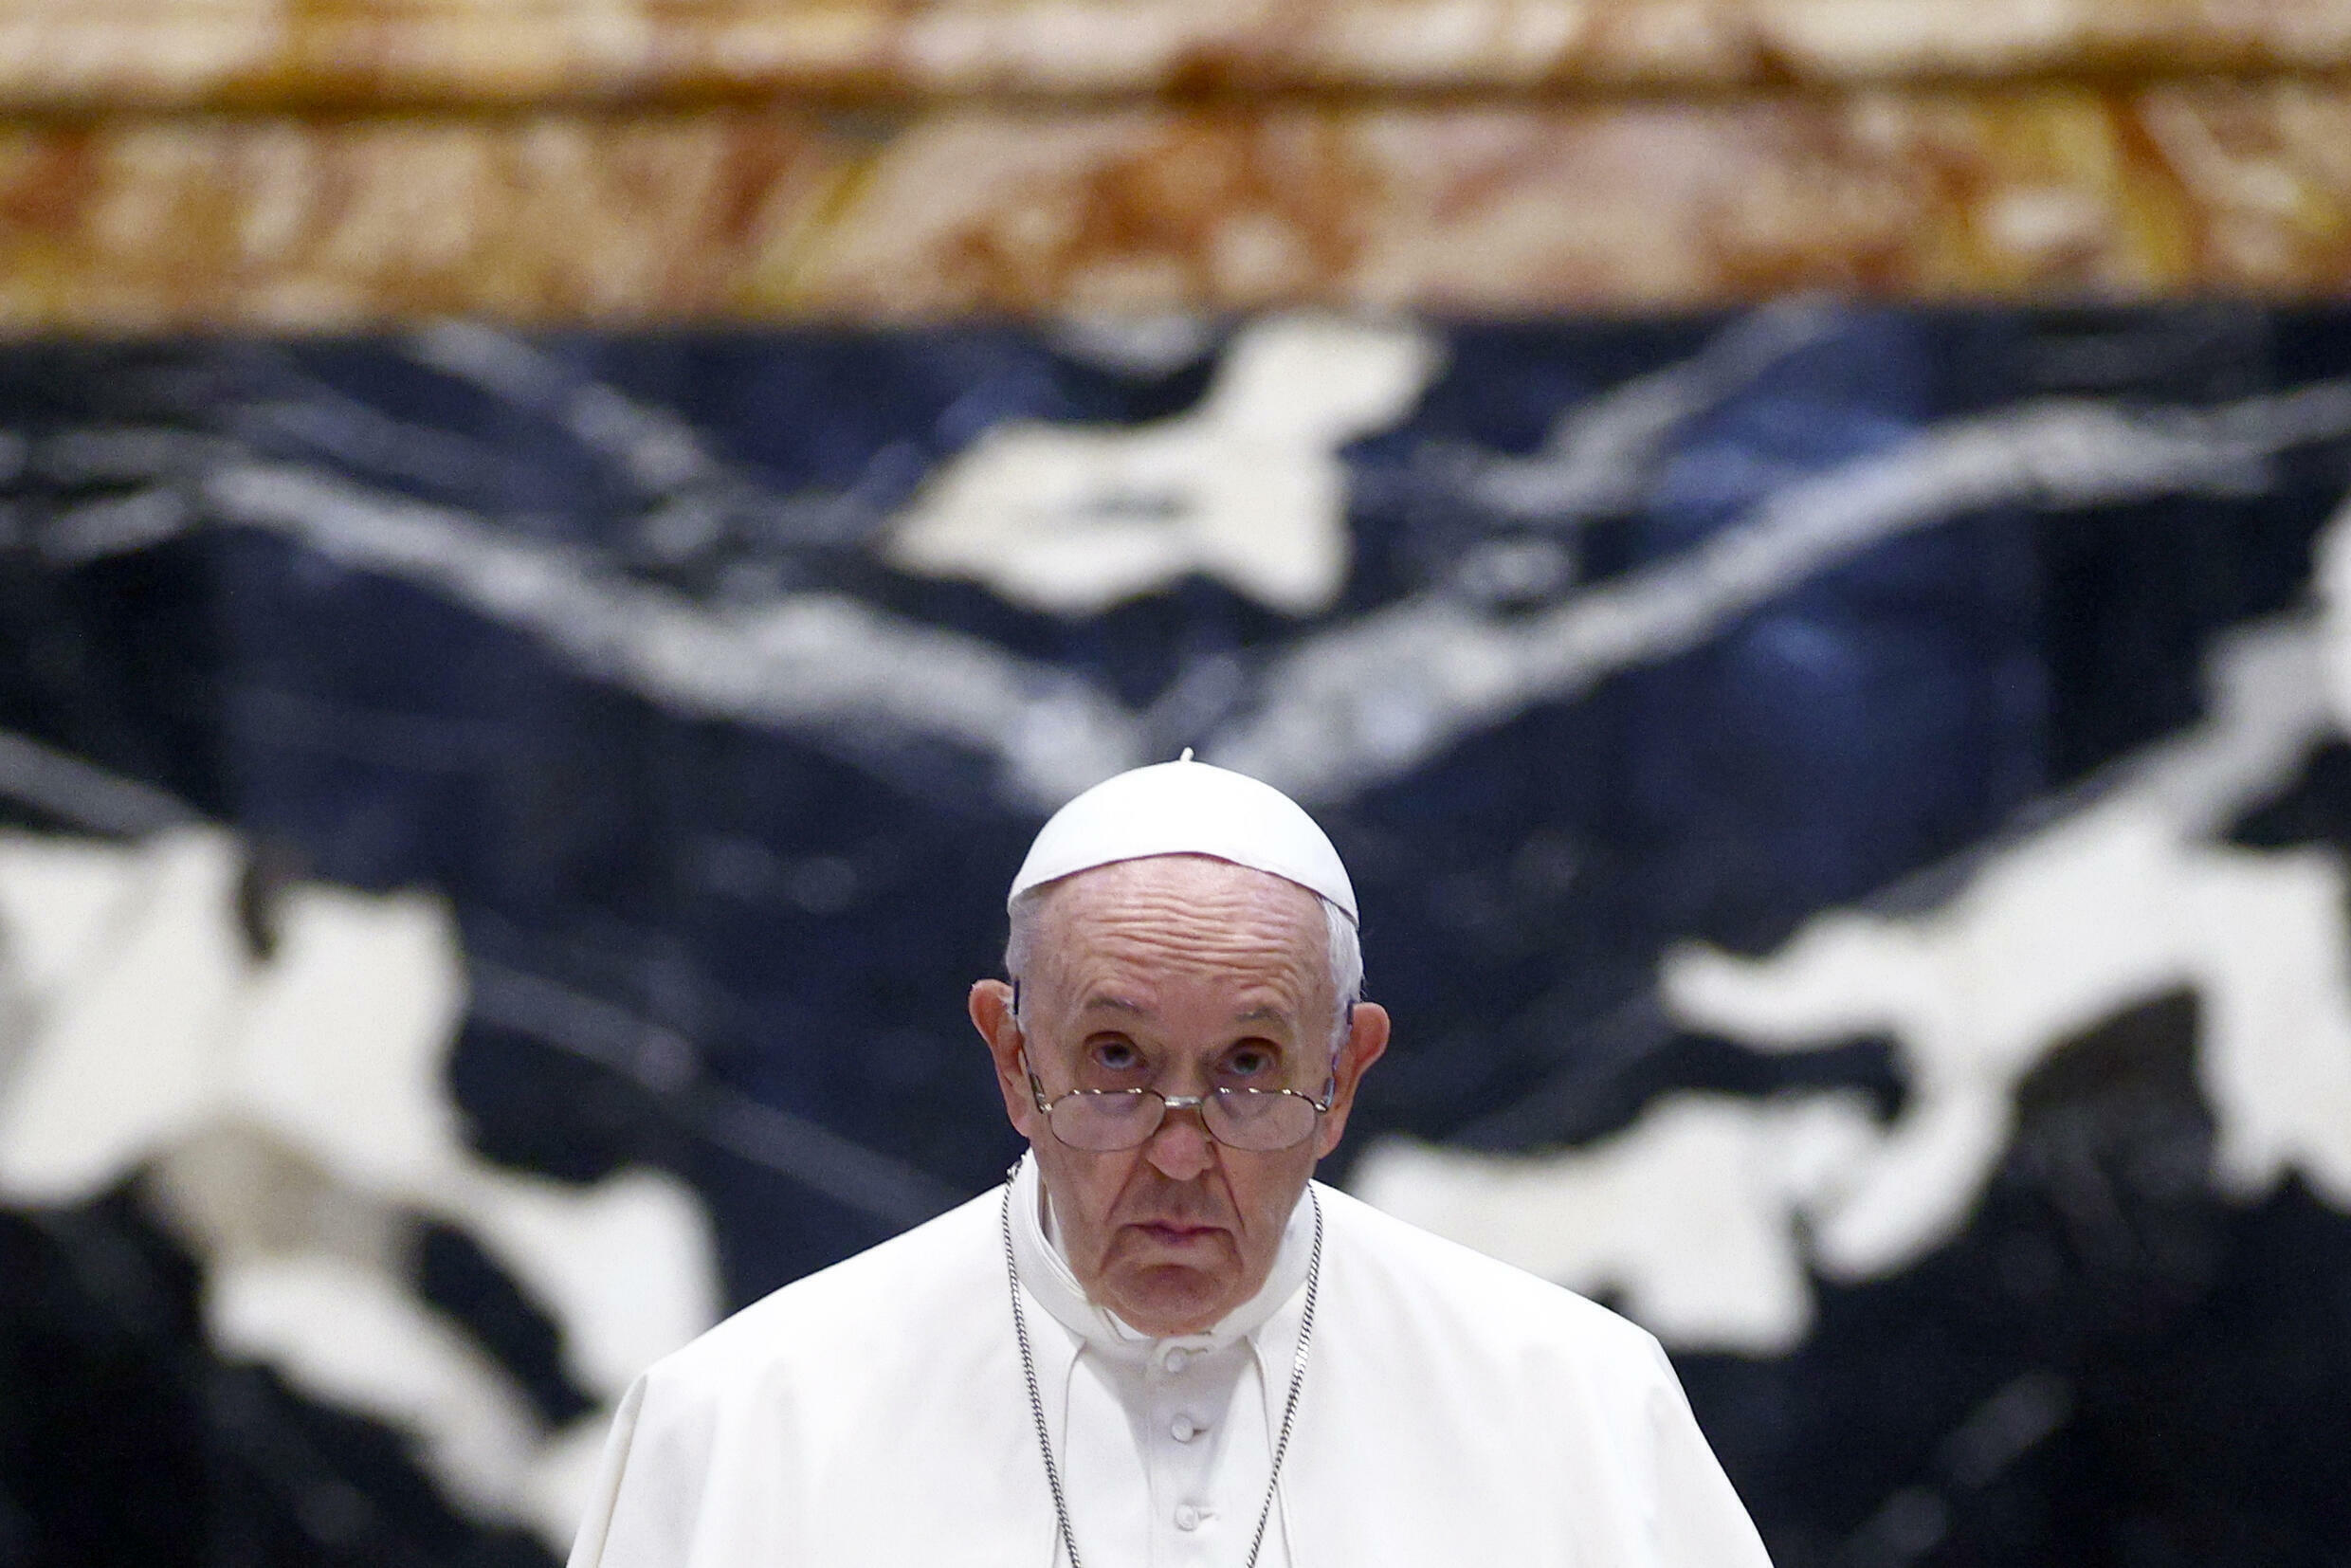 Pope Francis has promised to clean up the Vatican's finances